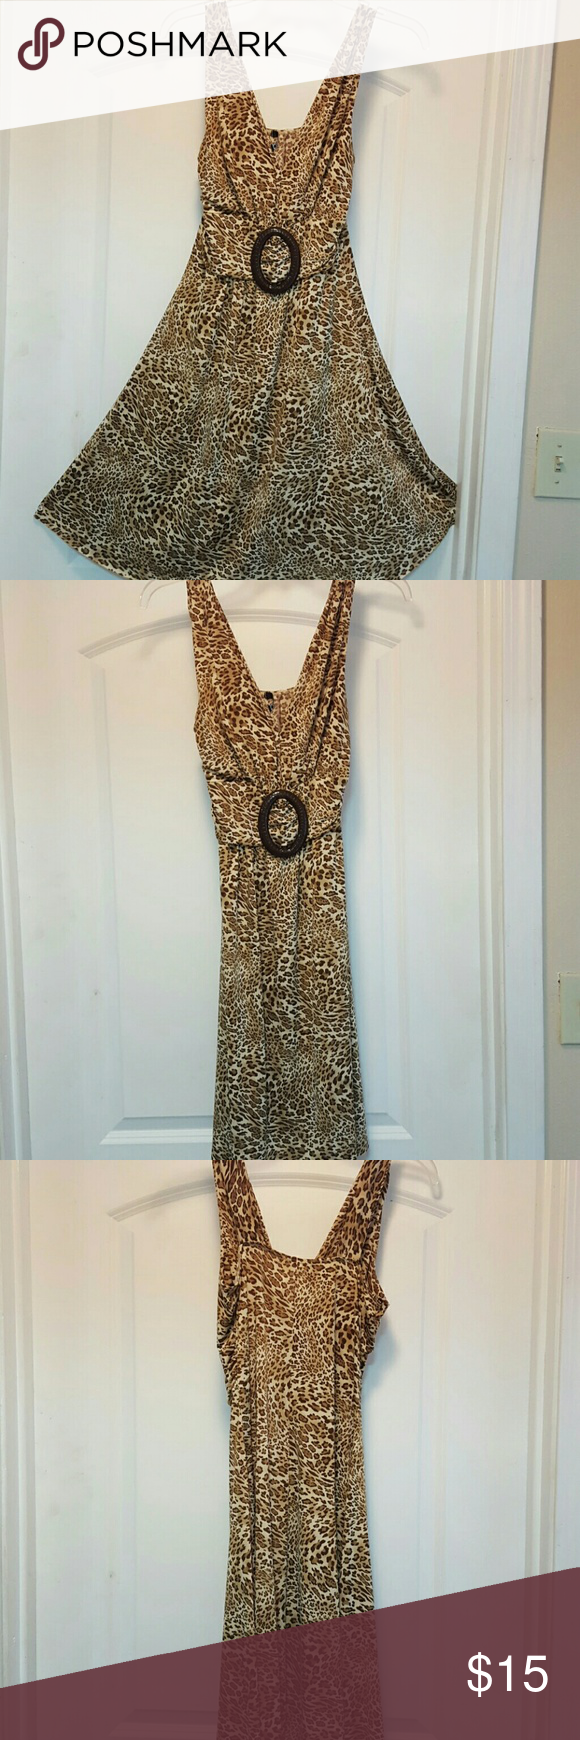 Leopard print dress Sexy for  cocktail or casual  ocation Dresses Maxi